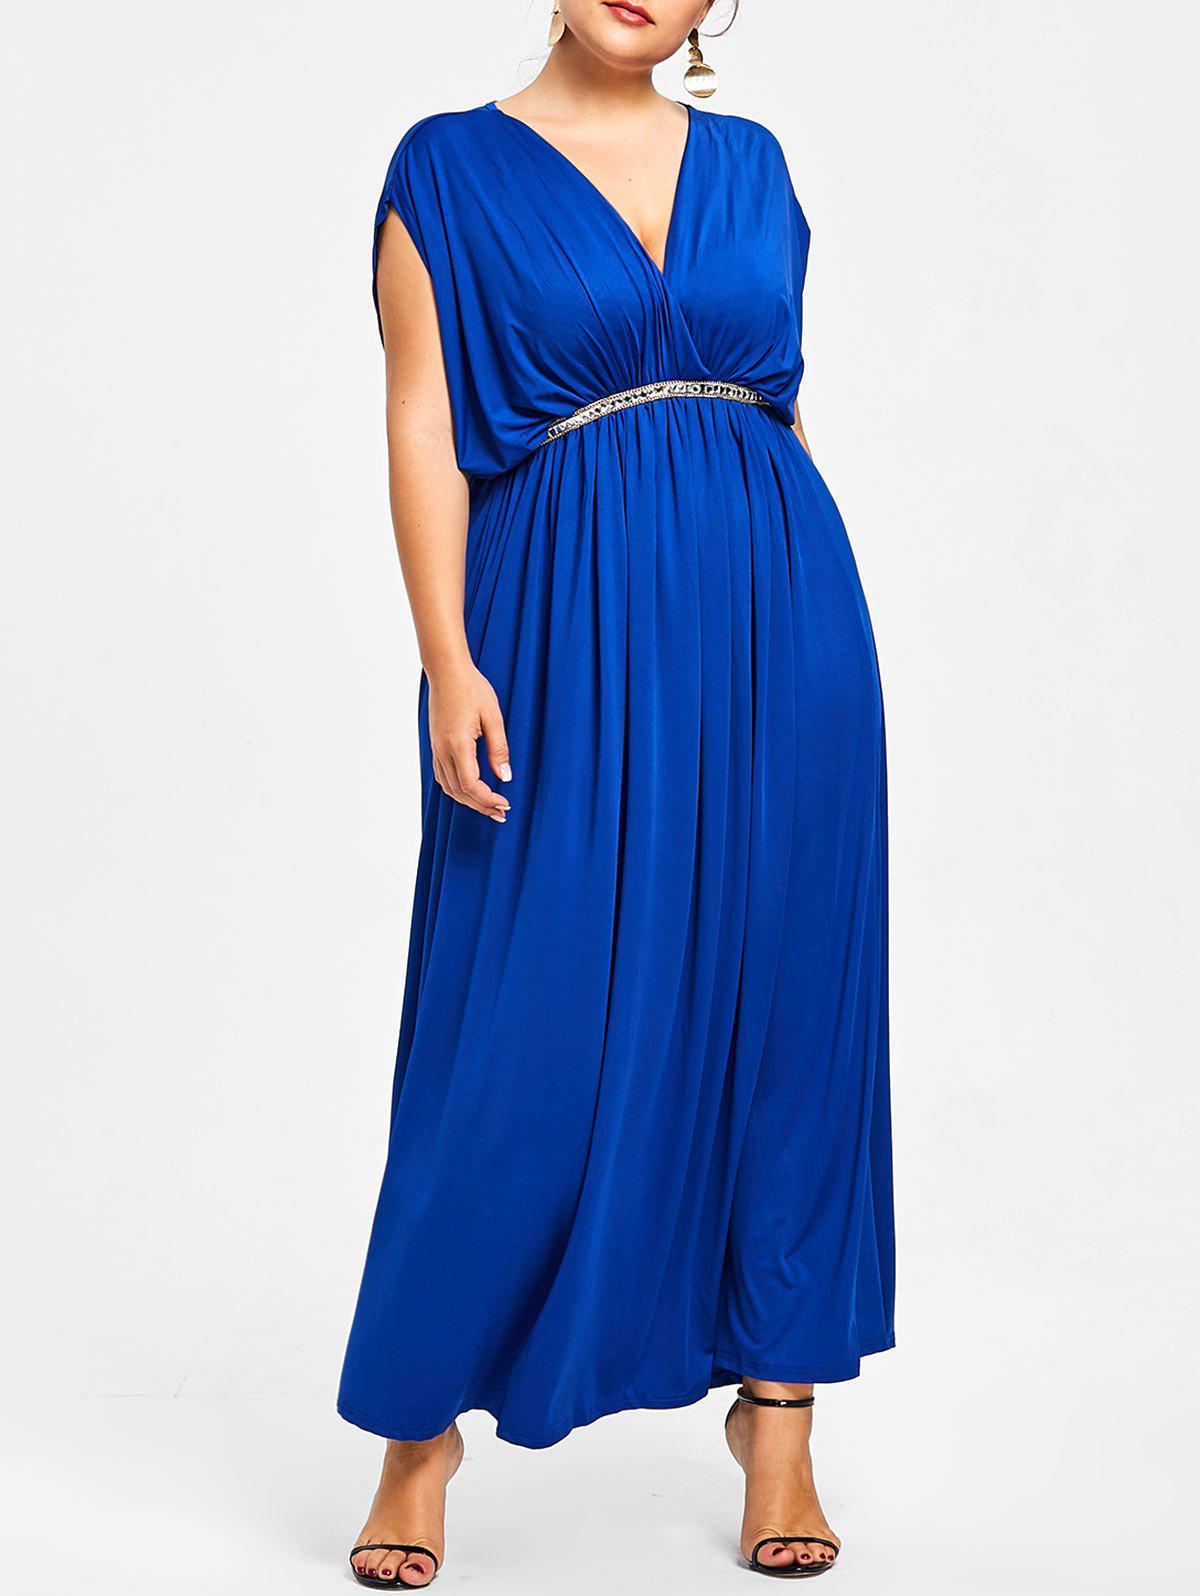 New Plunge Plus Size Prom Maxi Dress